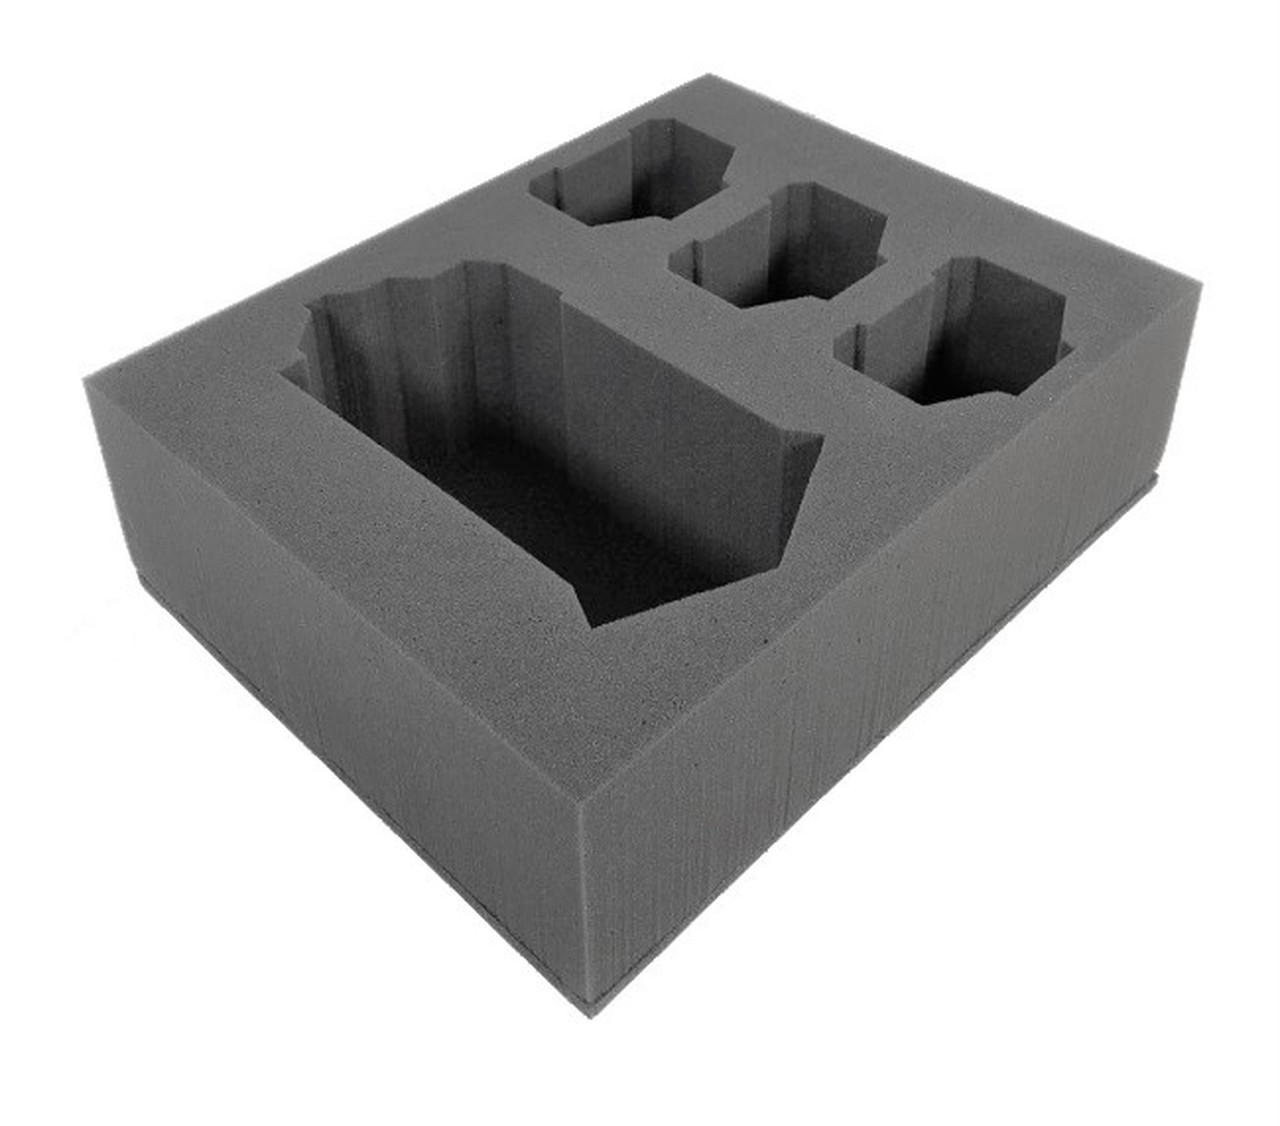 Battlefoam: WH40K: Orks: Tray: 1 Kill Bursta/Blasta 3 Killa Kan Foam Tray (BFL-4.5)